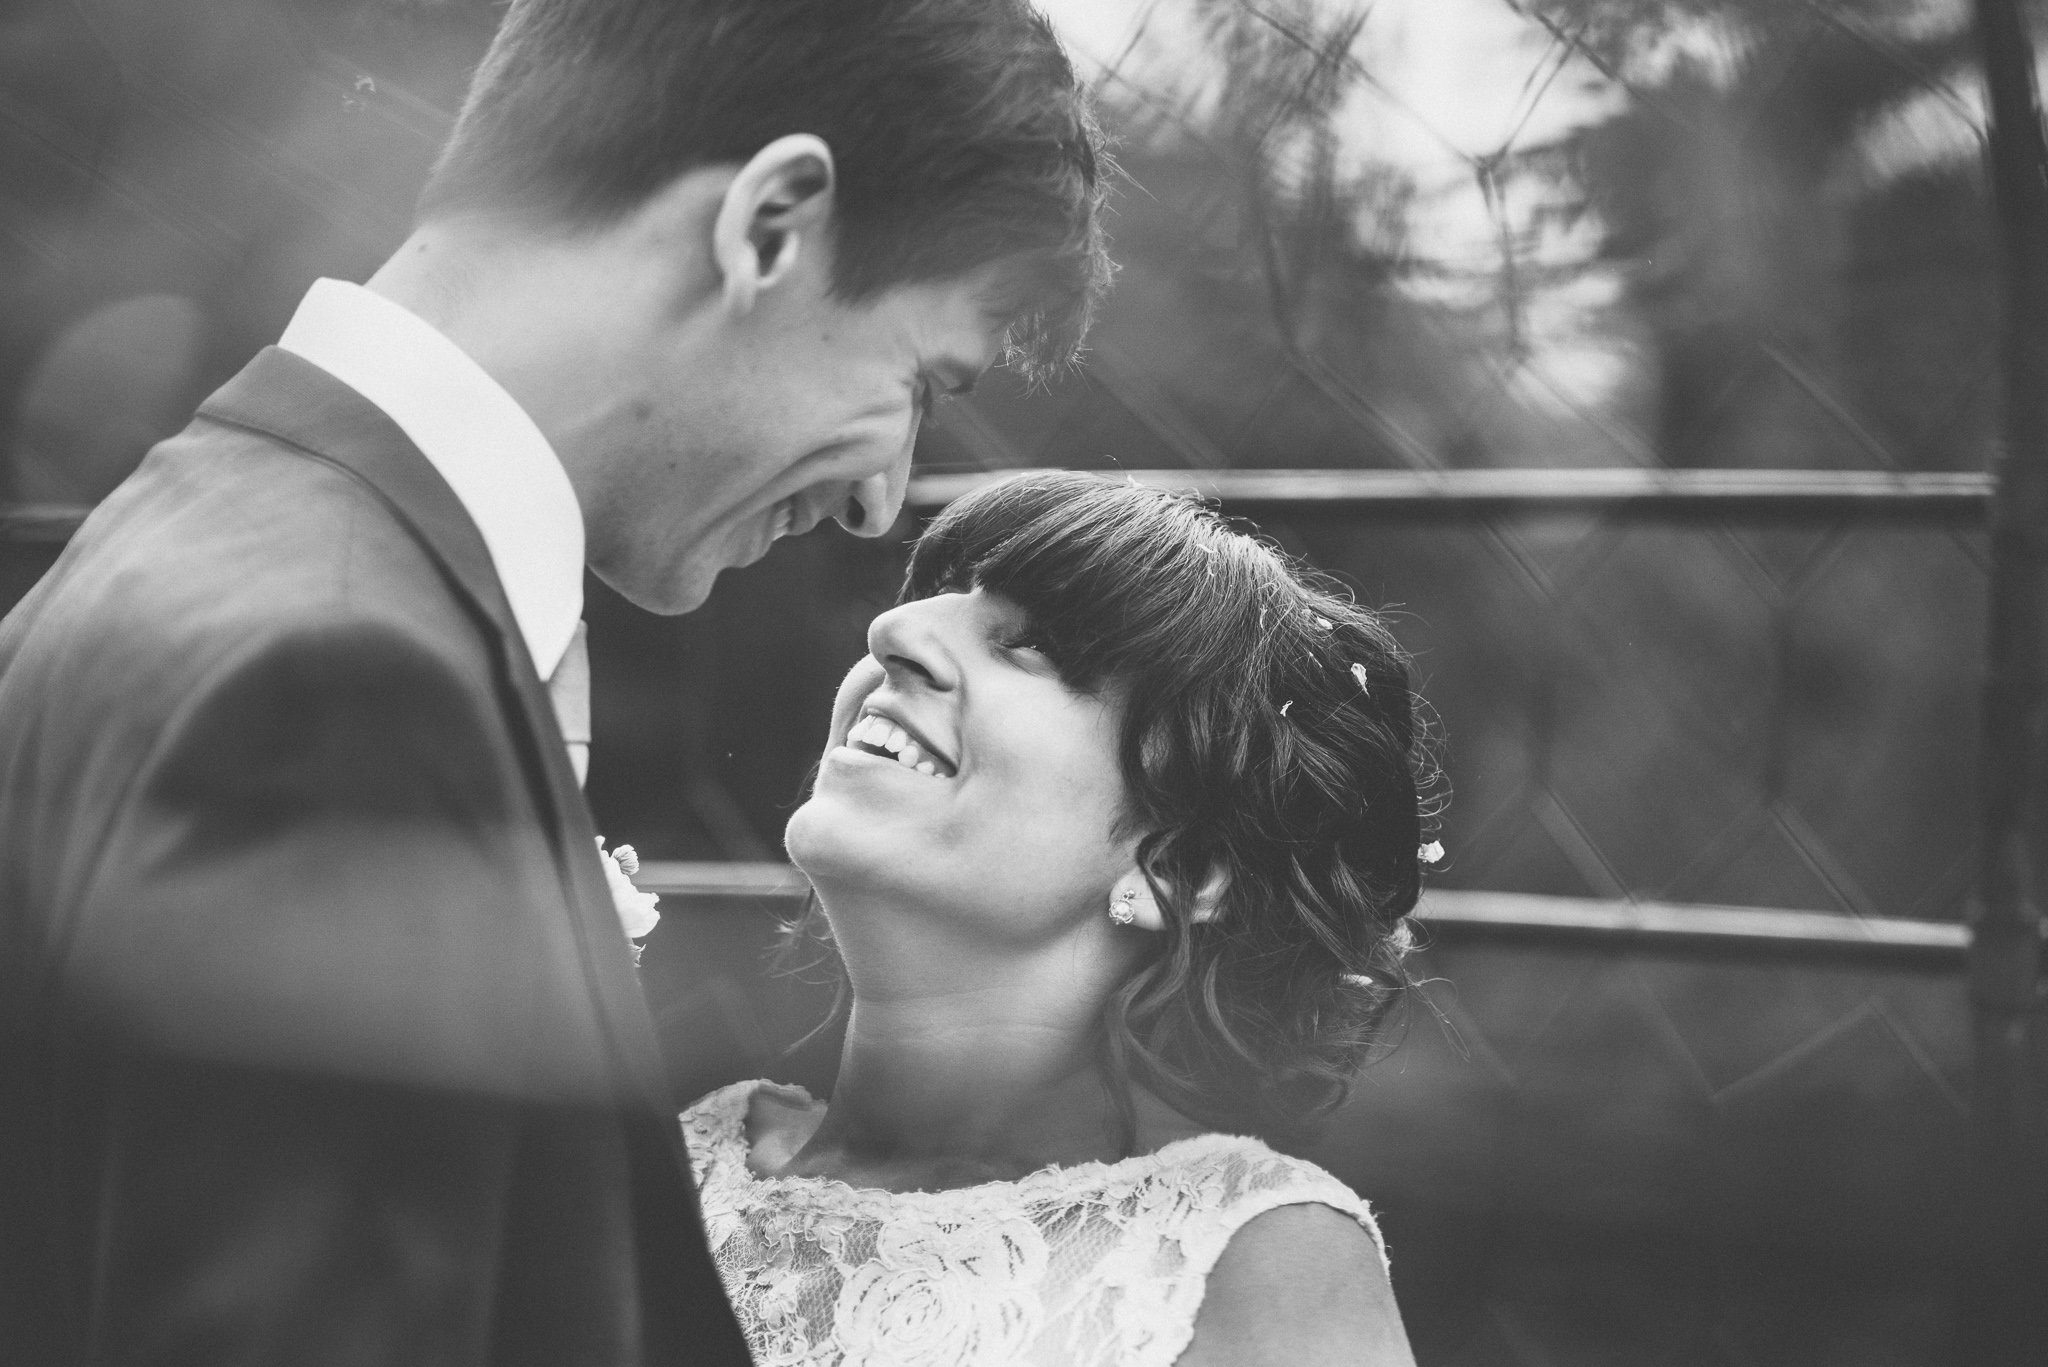 A black and white close up of the newlyweds smiling adoringly at each other